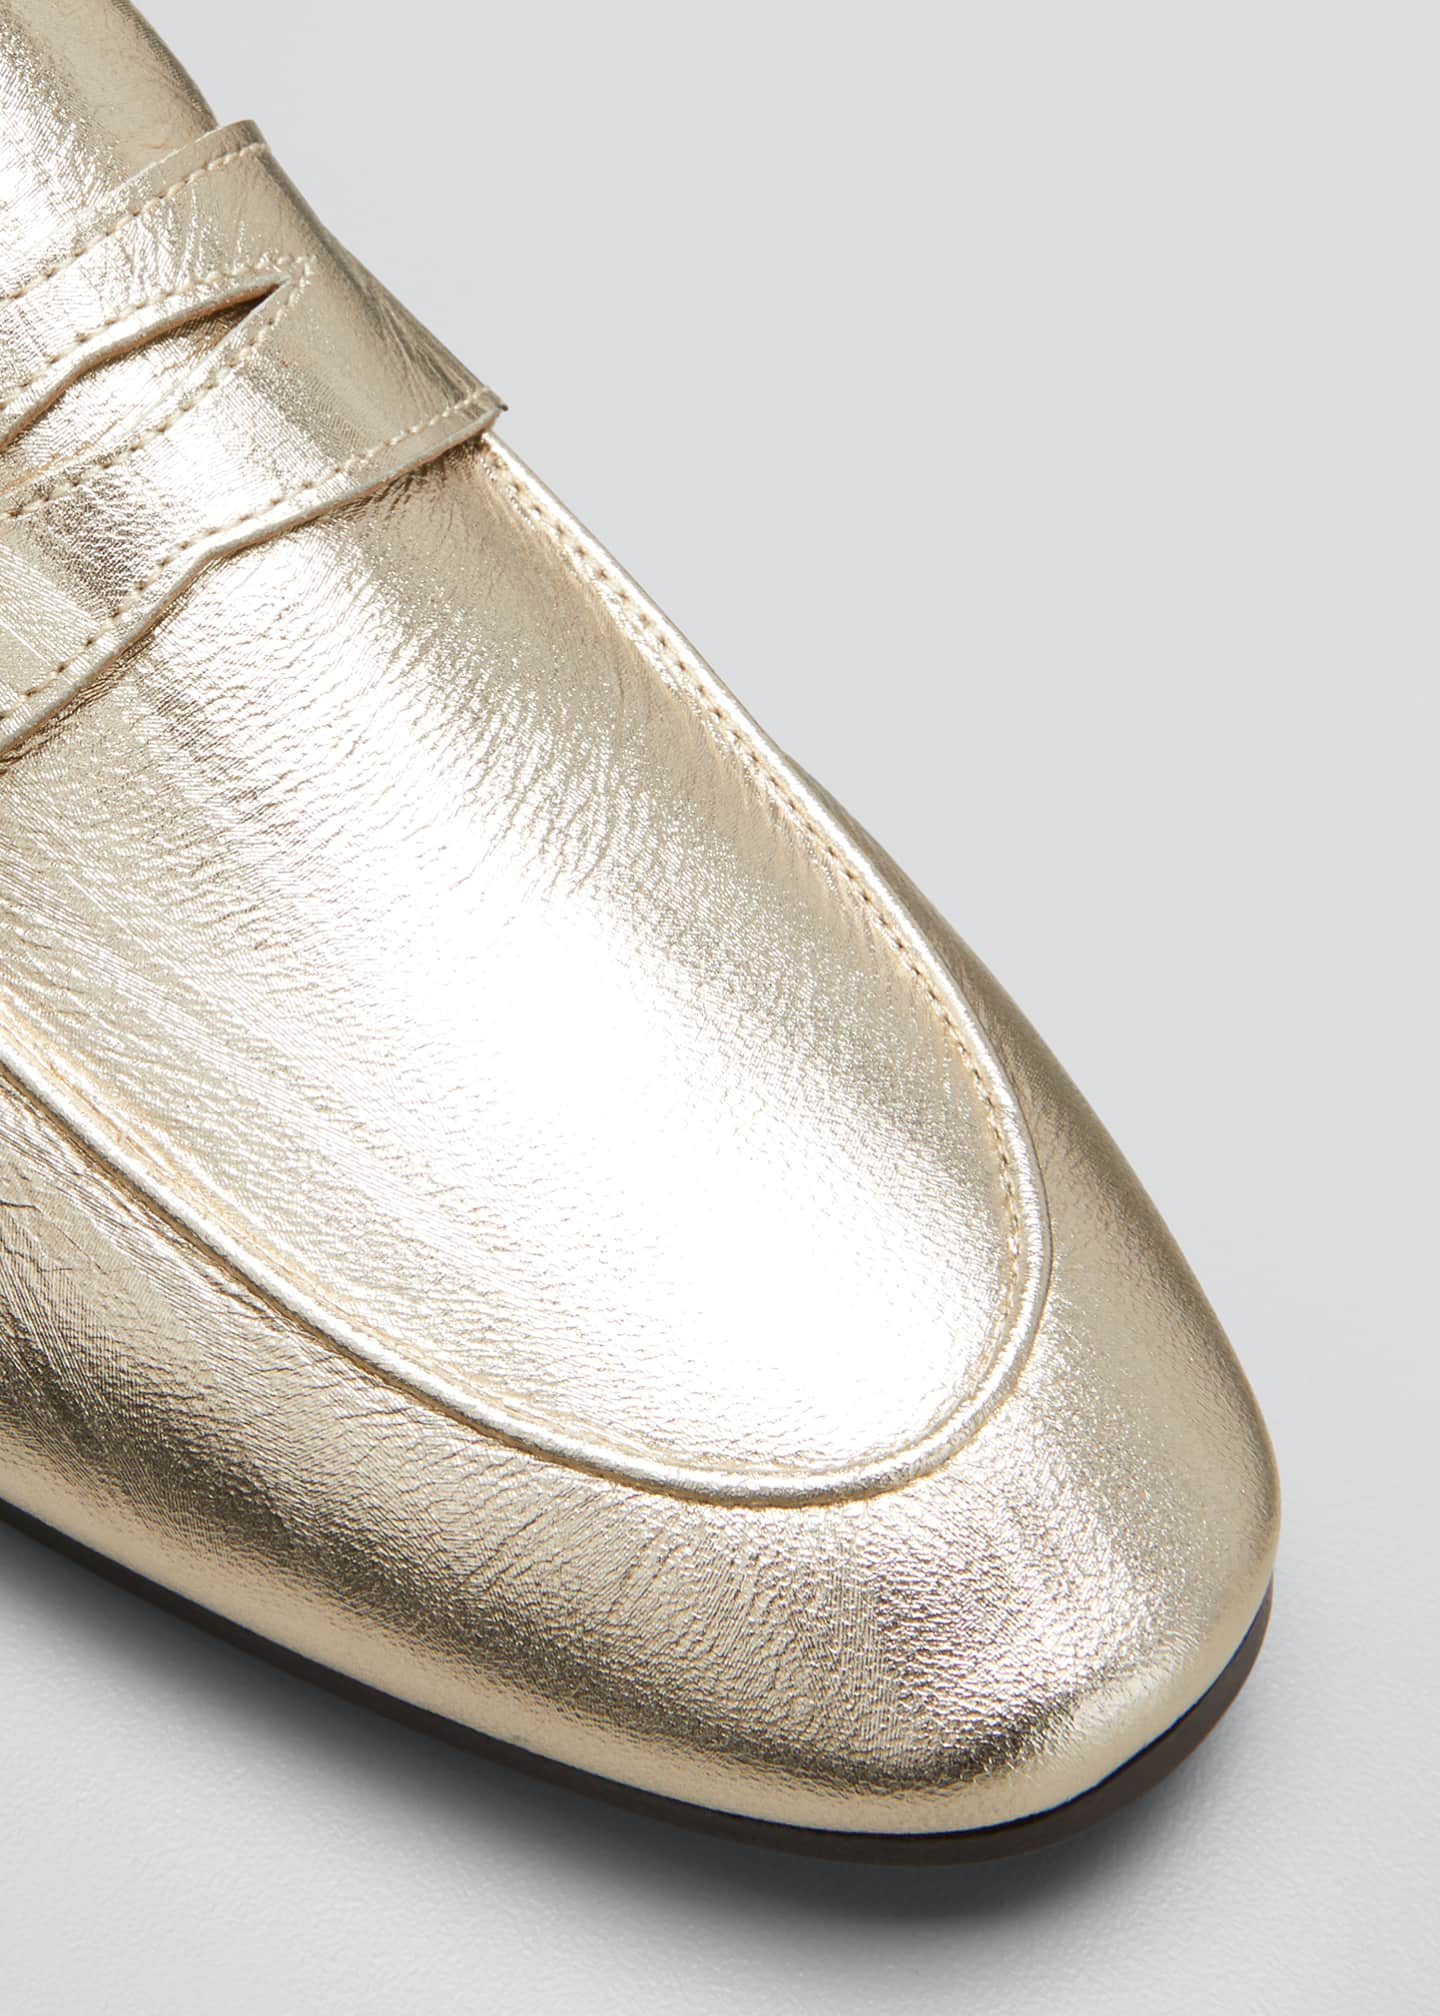 Image 5 of 5: Flaneur Metallic Leather Penny Loafers